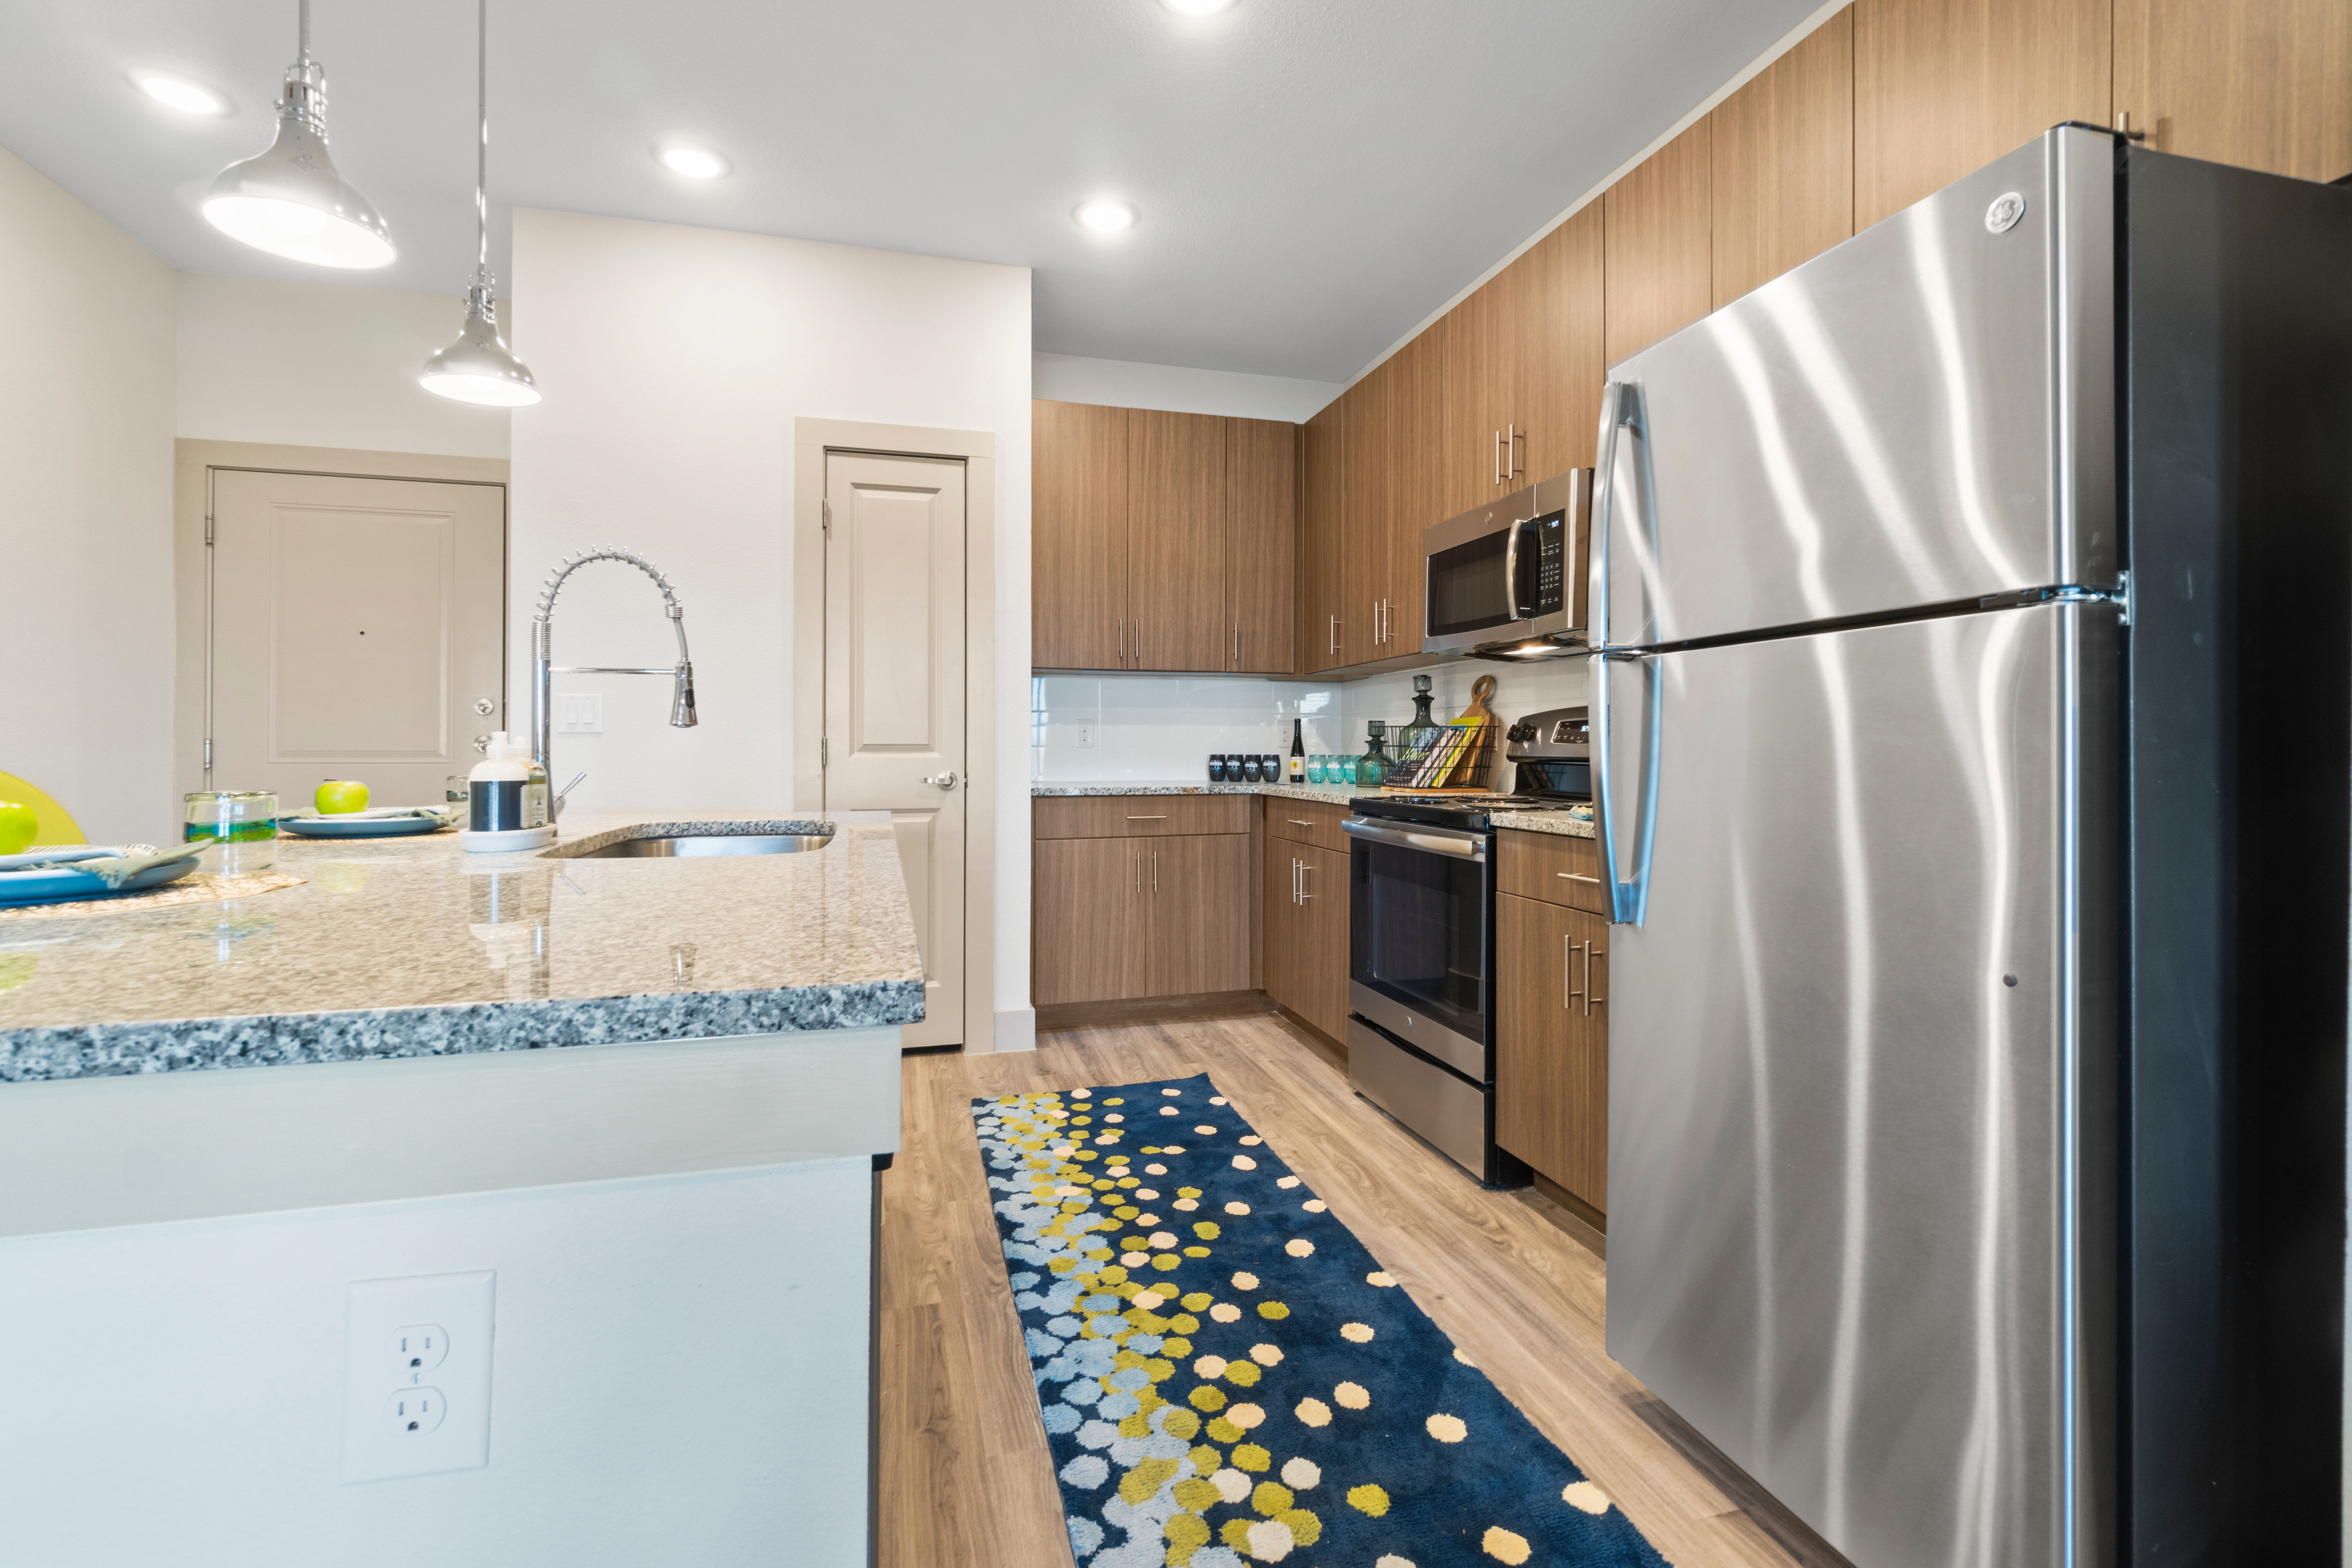 Kitchen with large countertop at McCarty Commons in San Marcos, Texas